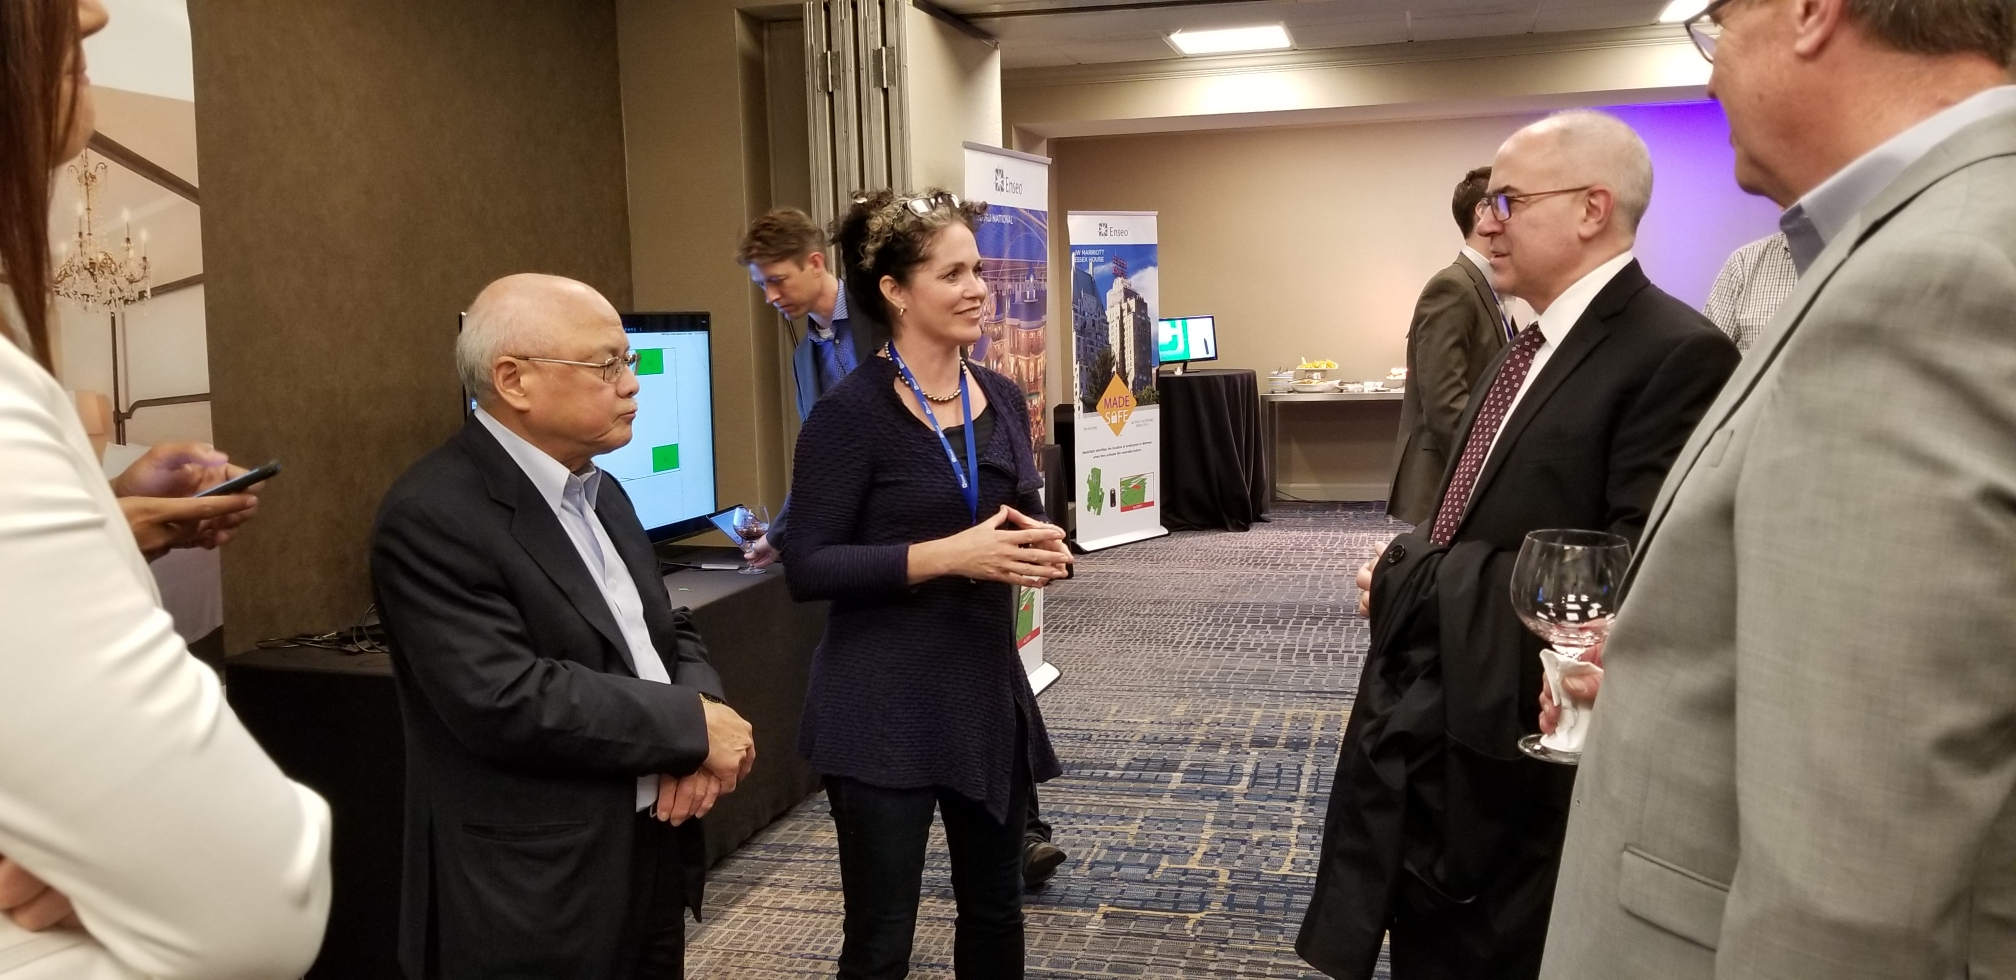 Enseo team members interact with hoteliers at a MadeSafe Demo Event